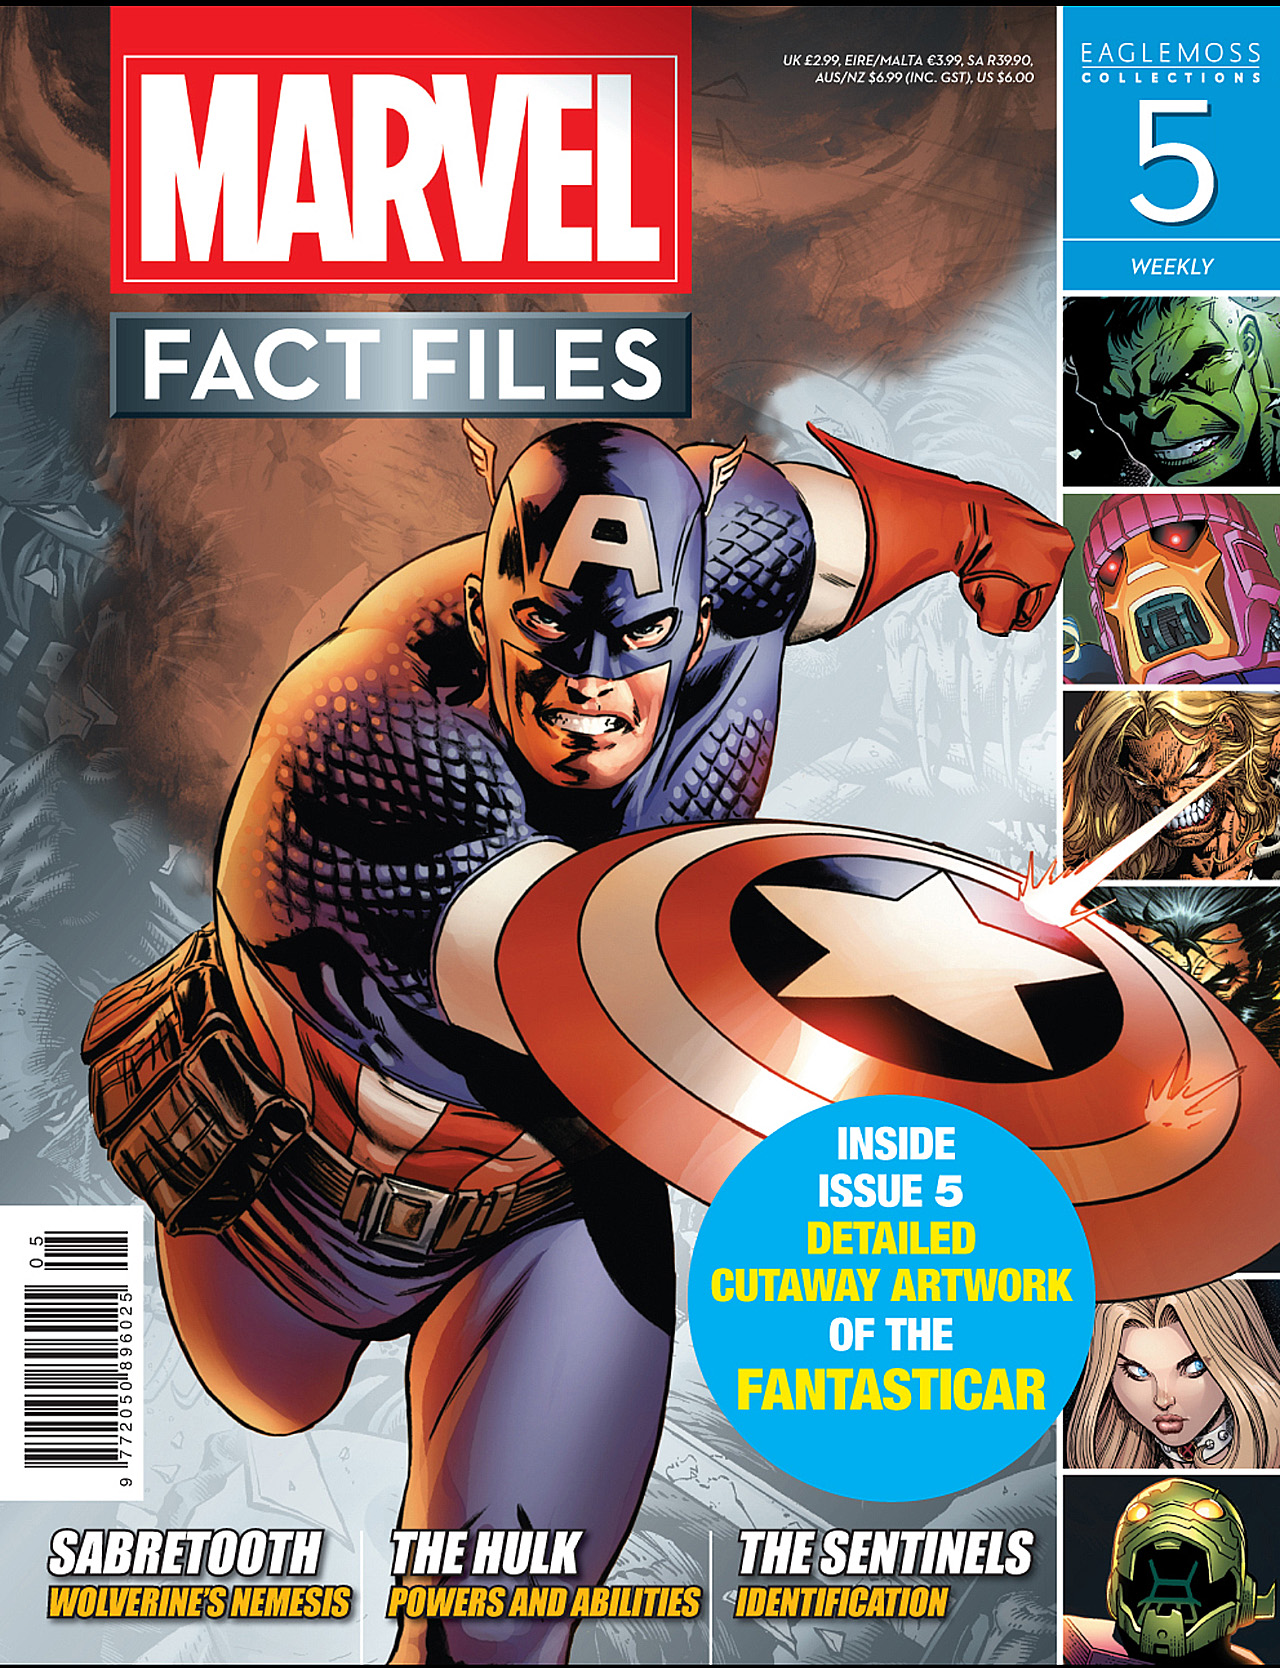 Marvel Fact Files 5 Page 1